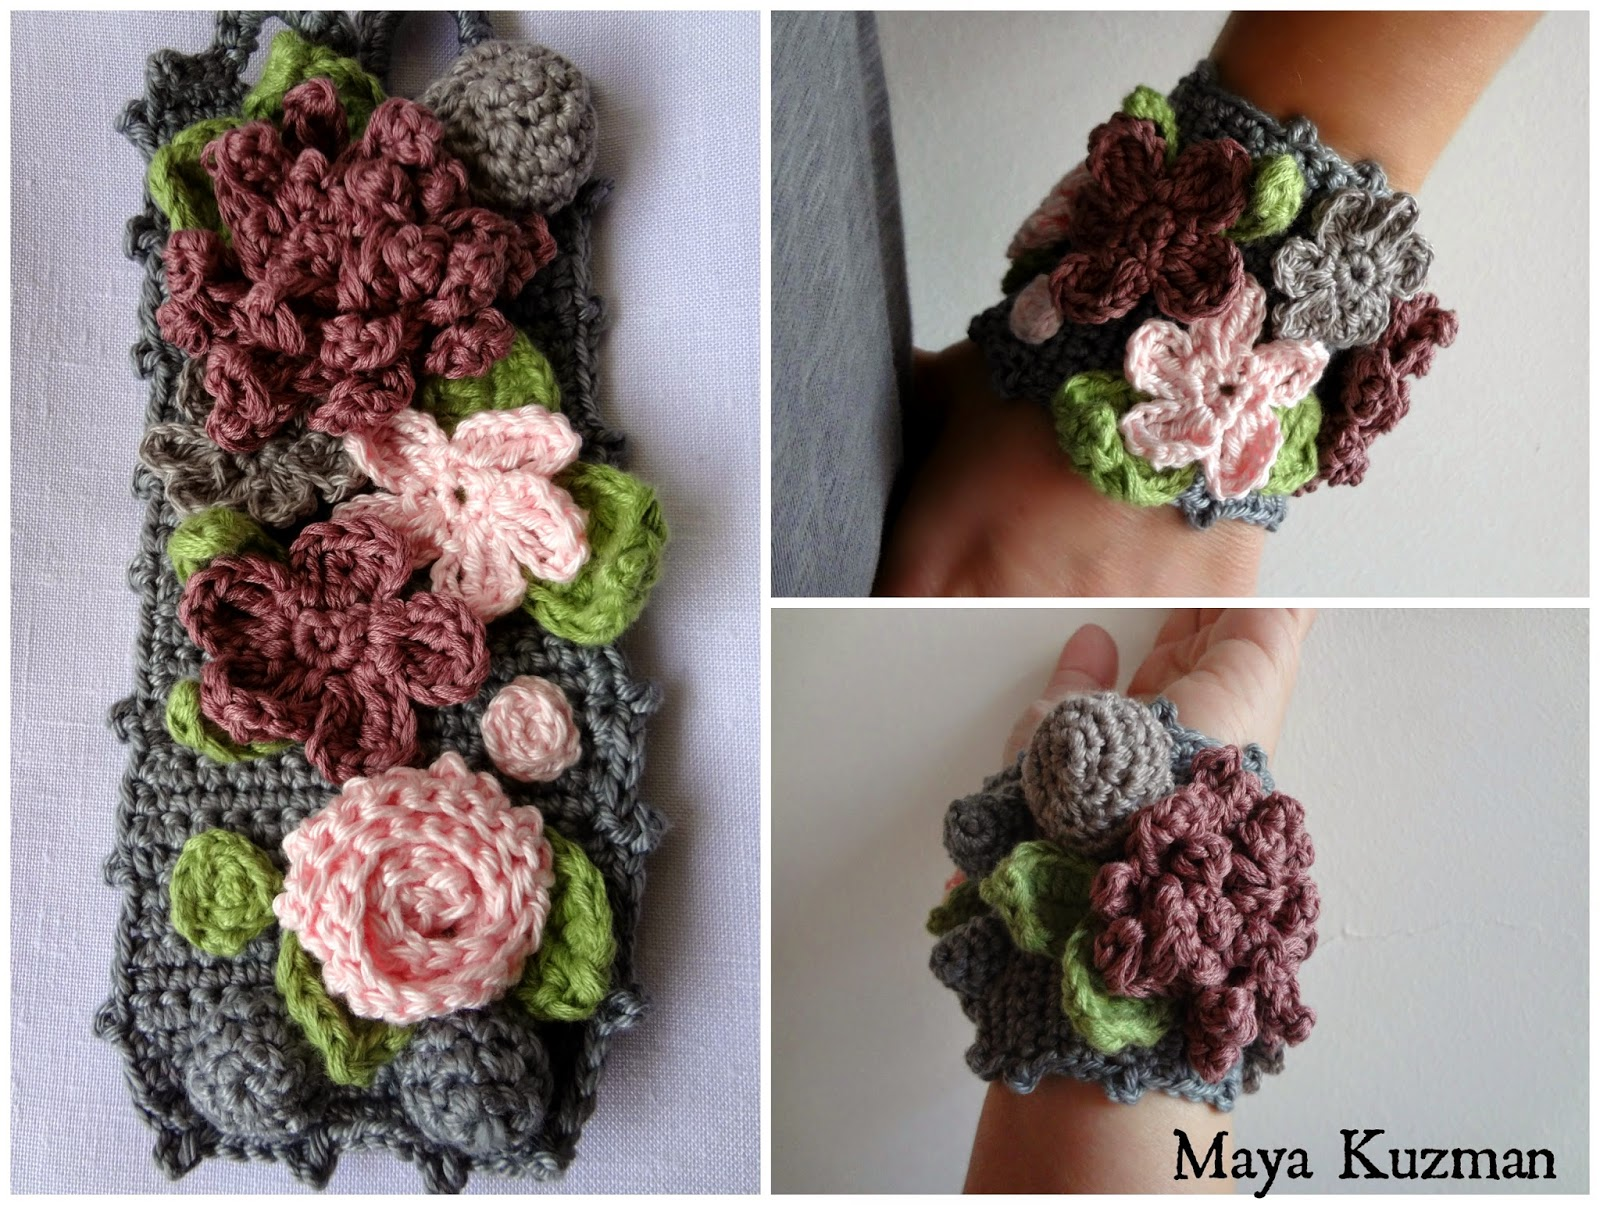 Boho Crochet Patterns : Little Treasures: Bohemian Bracelet #2 Crochet Pattern